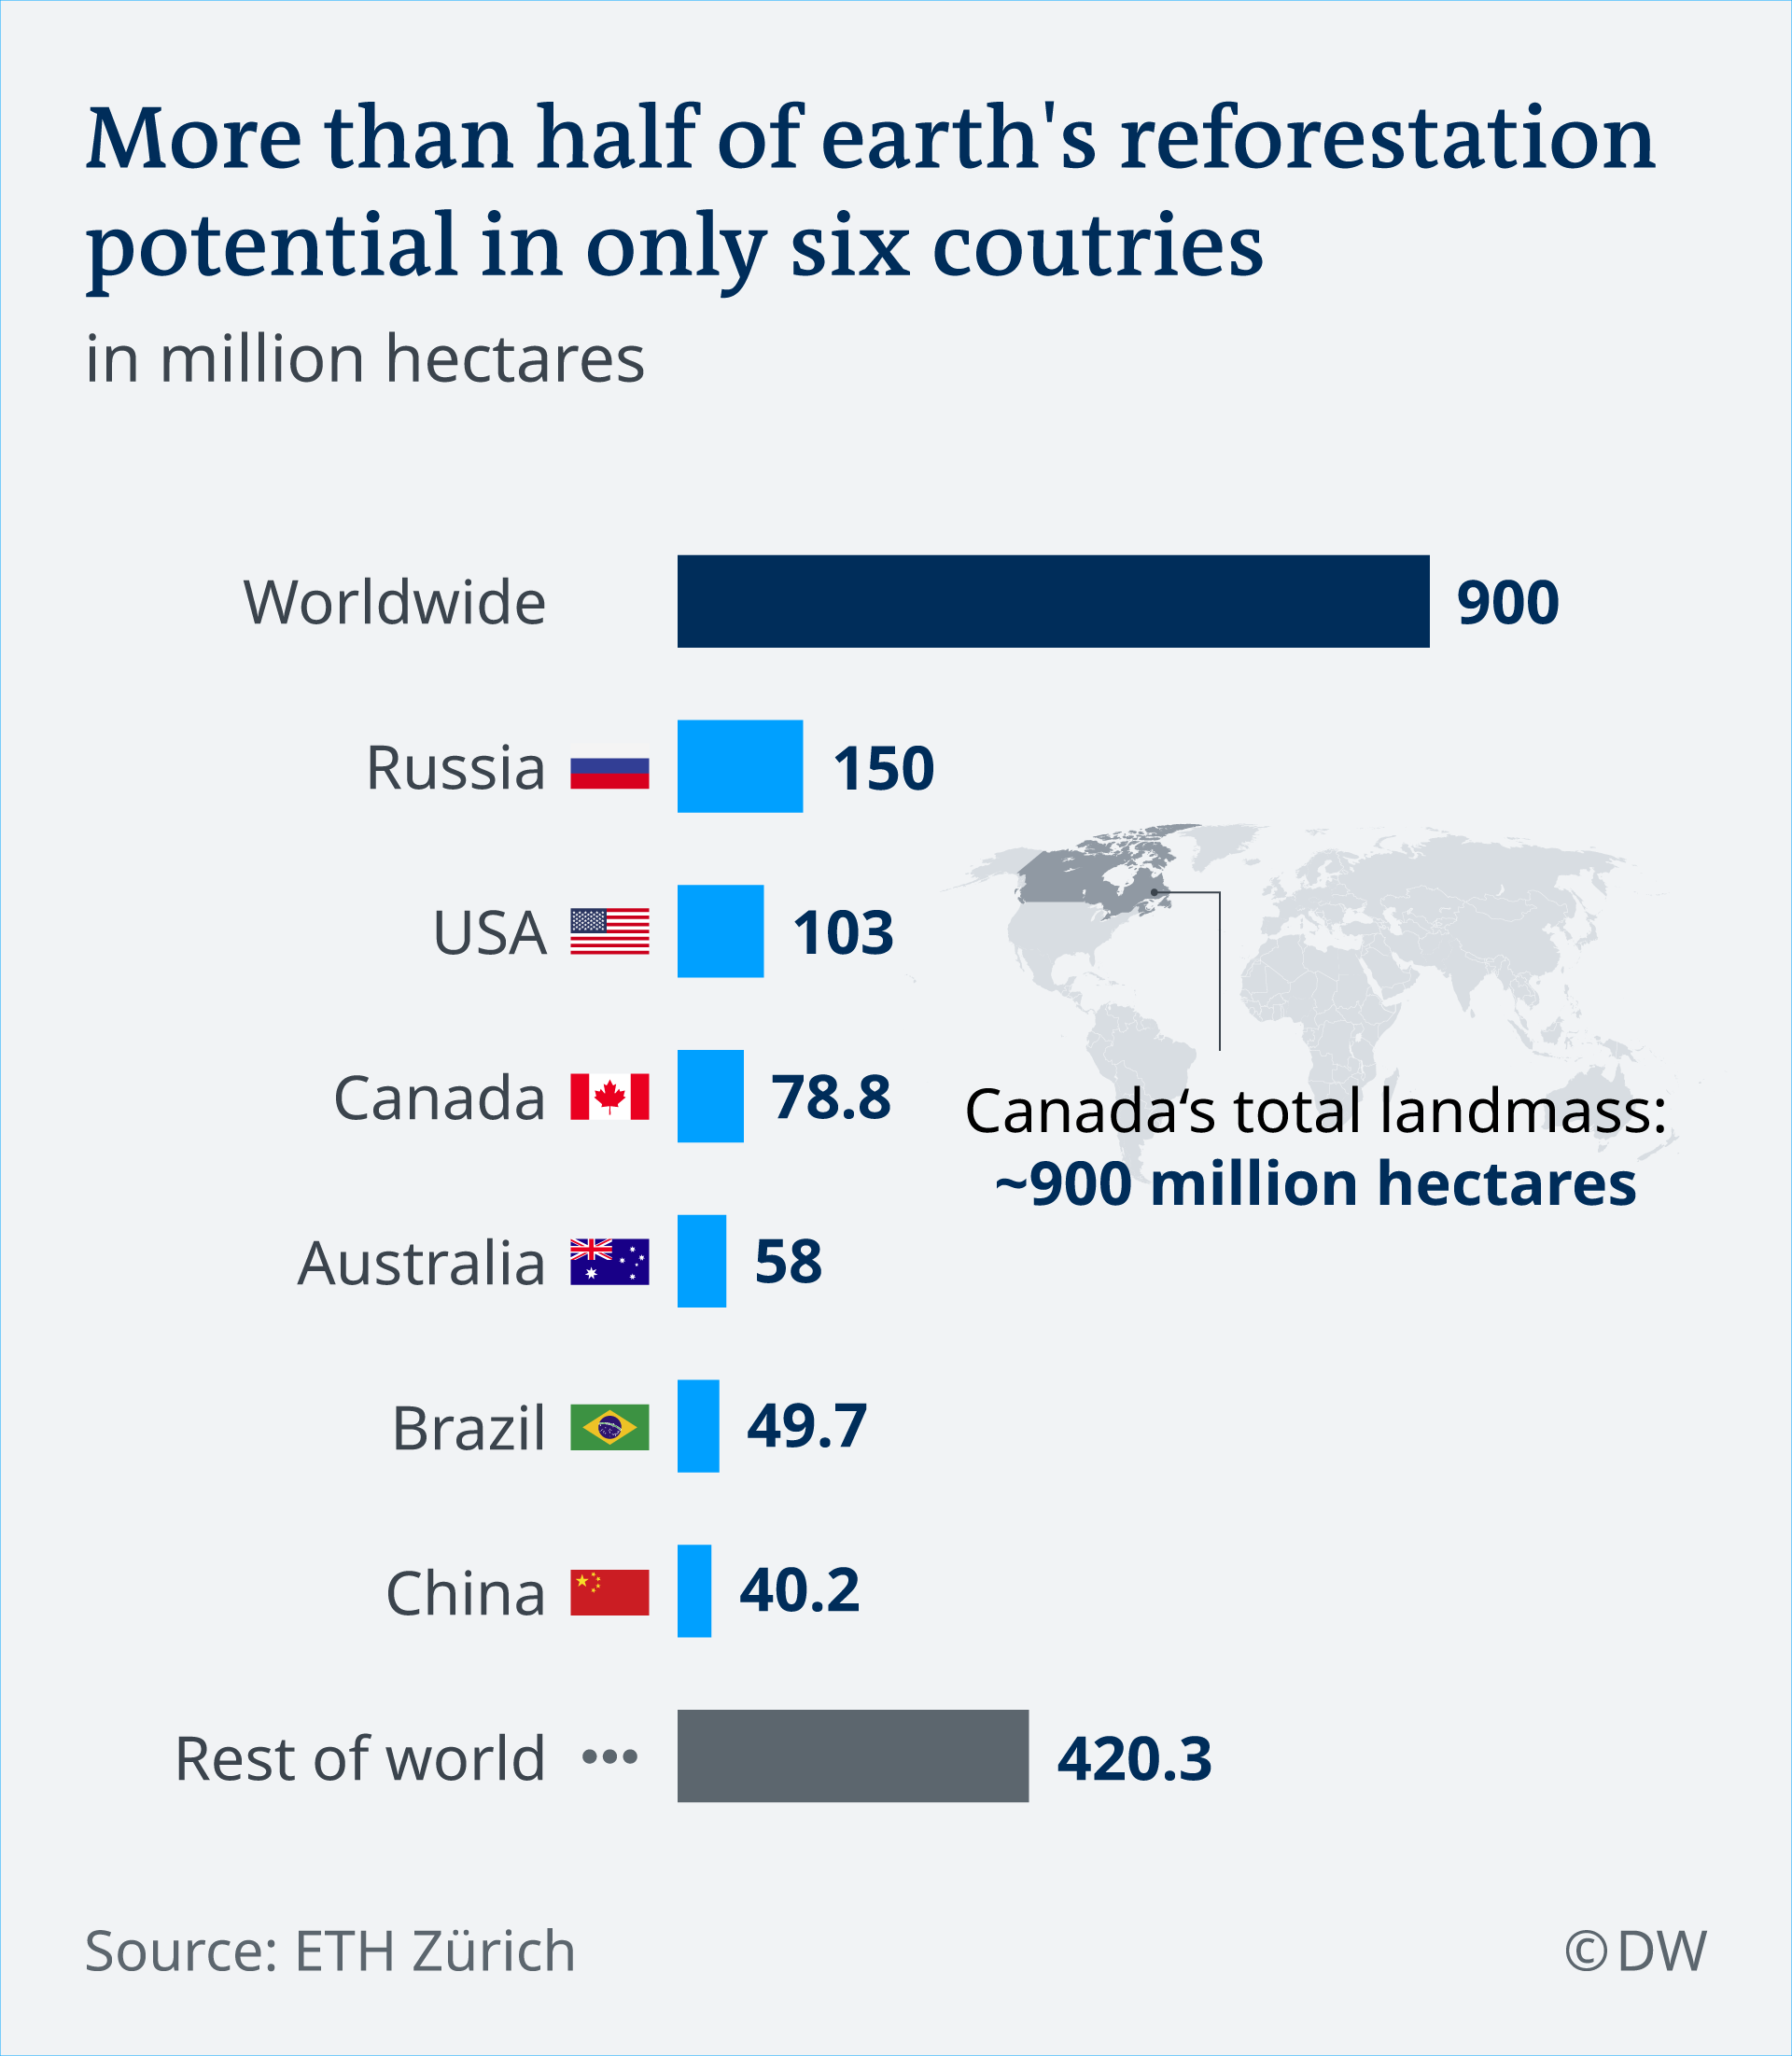 Infographic showing list of countries by reforestation potential